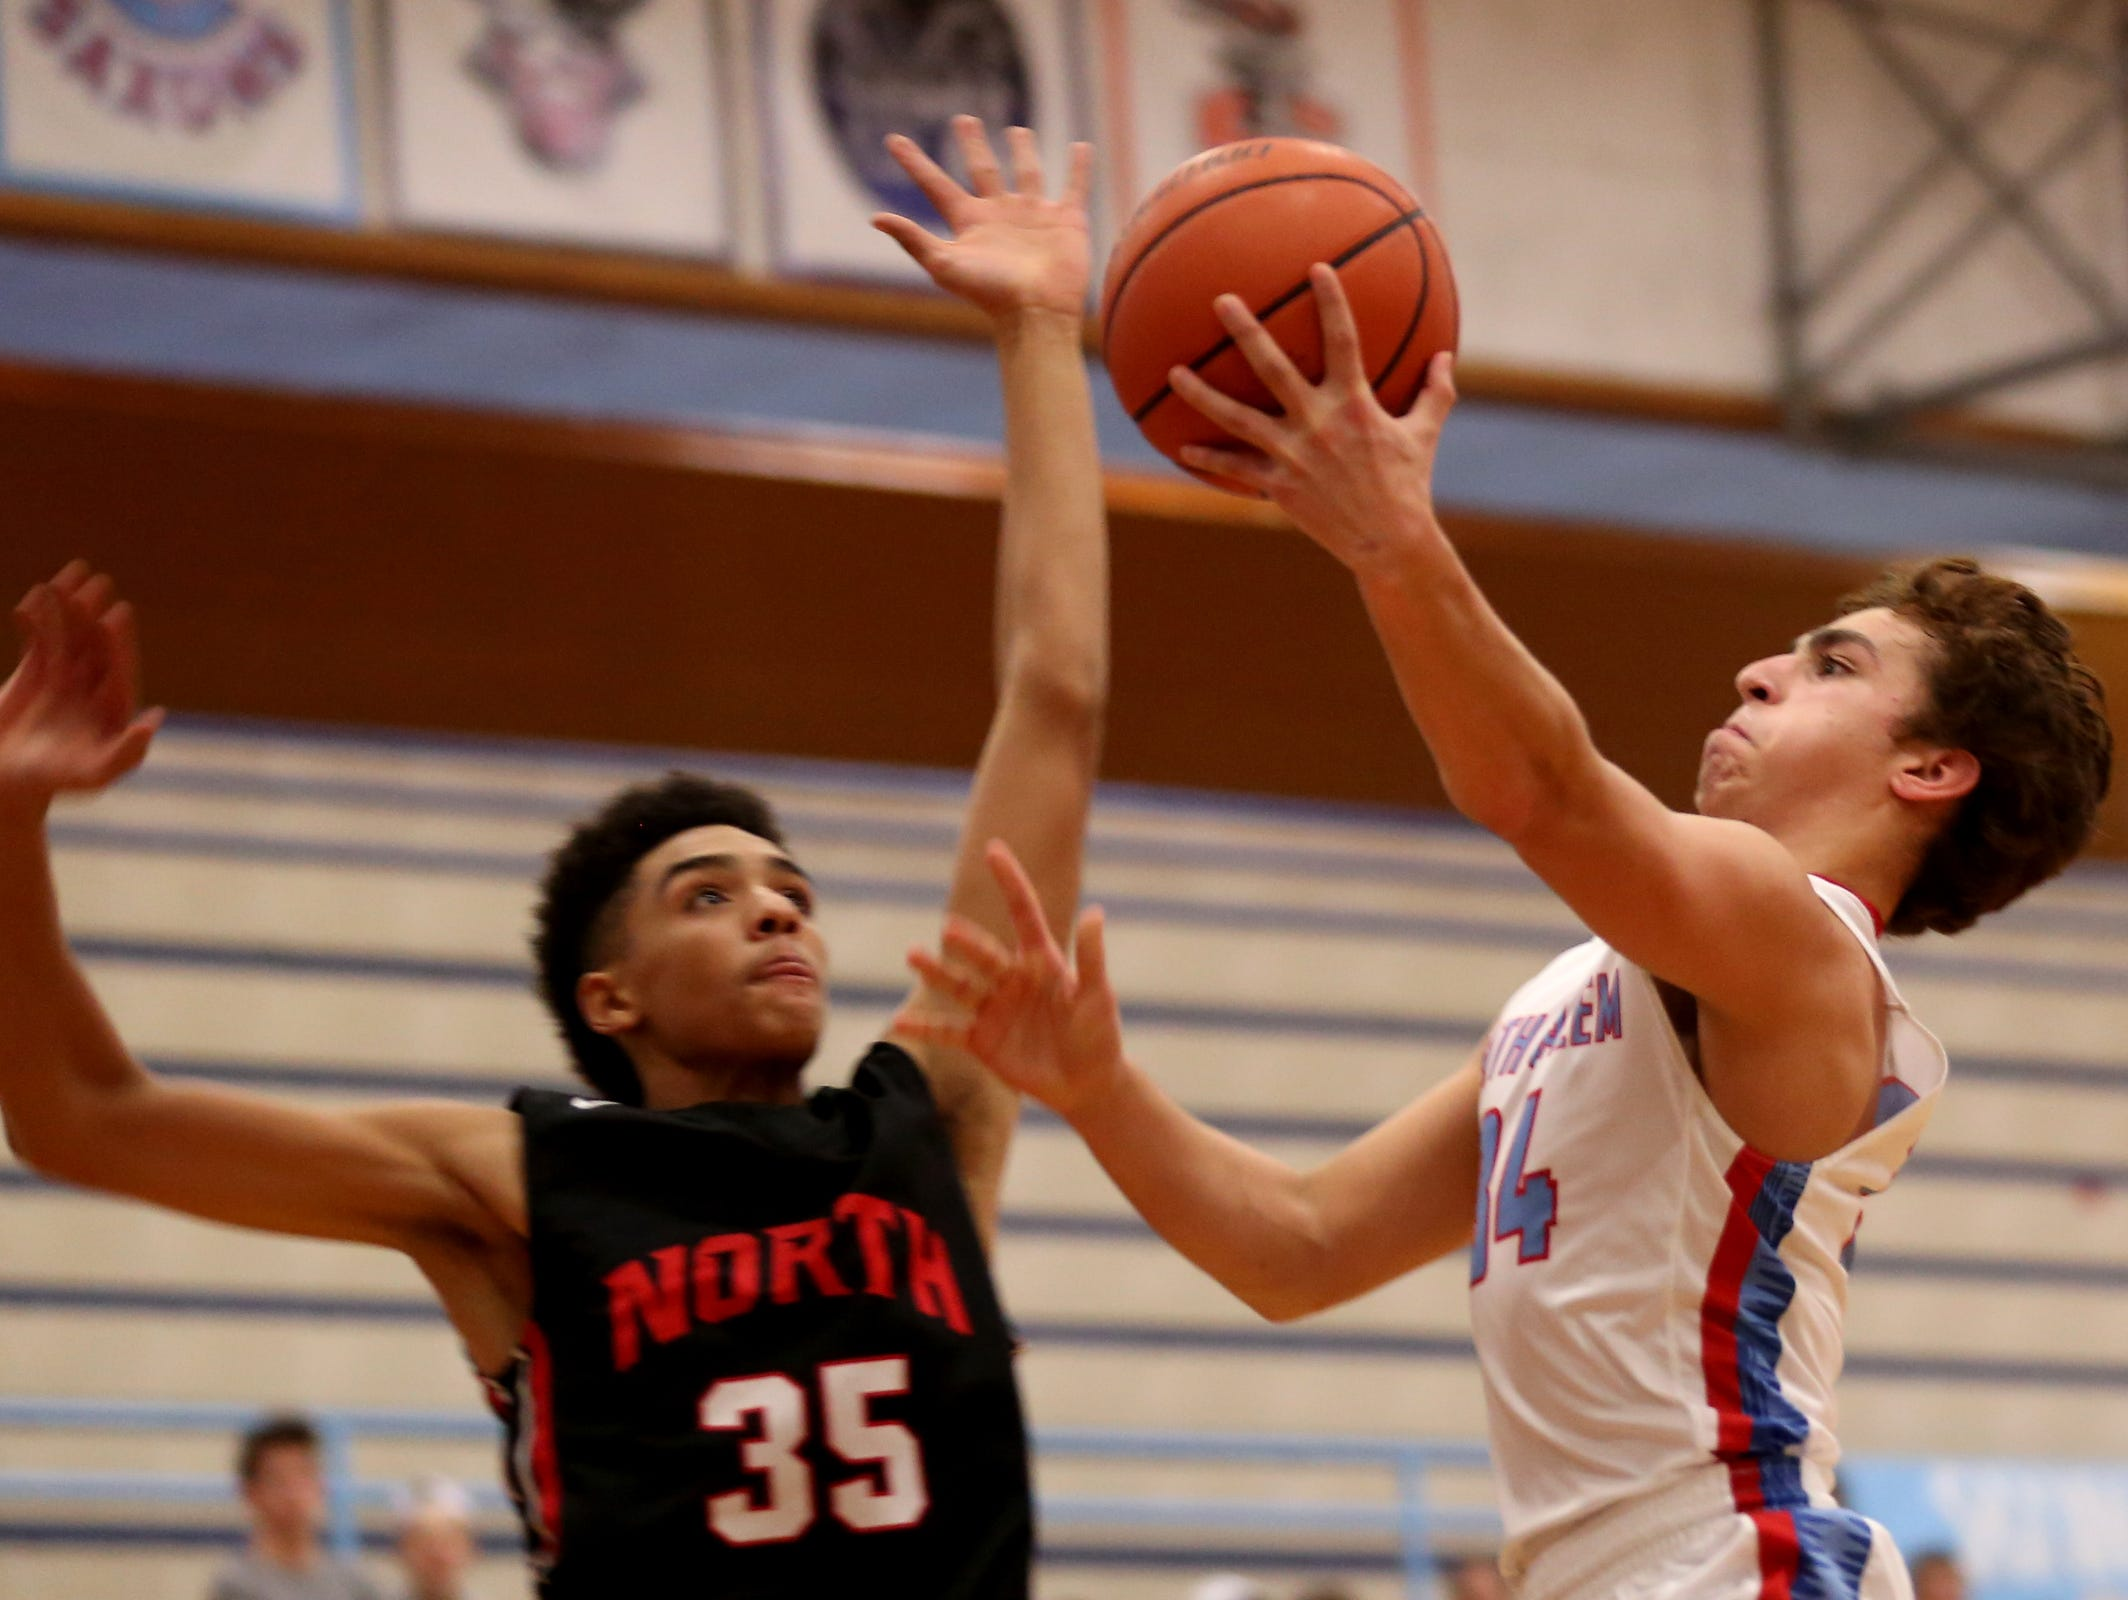 South Salem's Gavin Baughman (34) goes for two points as North Salem's Jordan Sampson (35) tries to block his shot in the North Salem vs. South Salem boy's basketball game at South Salem High School on Tuesday, Feb. 16, 2016. South Salem won the game 82-36, clinching the Greater Valley Conference Championship.